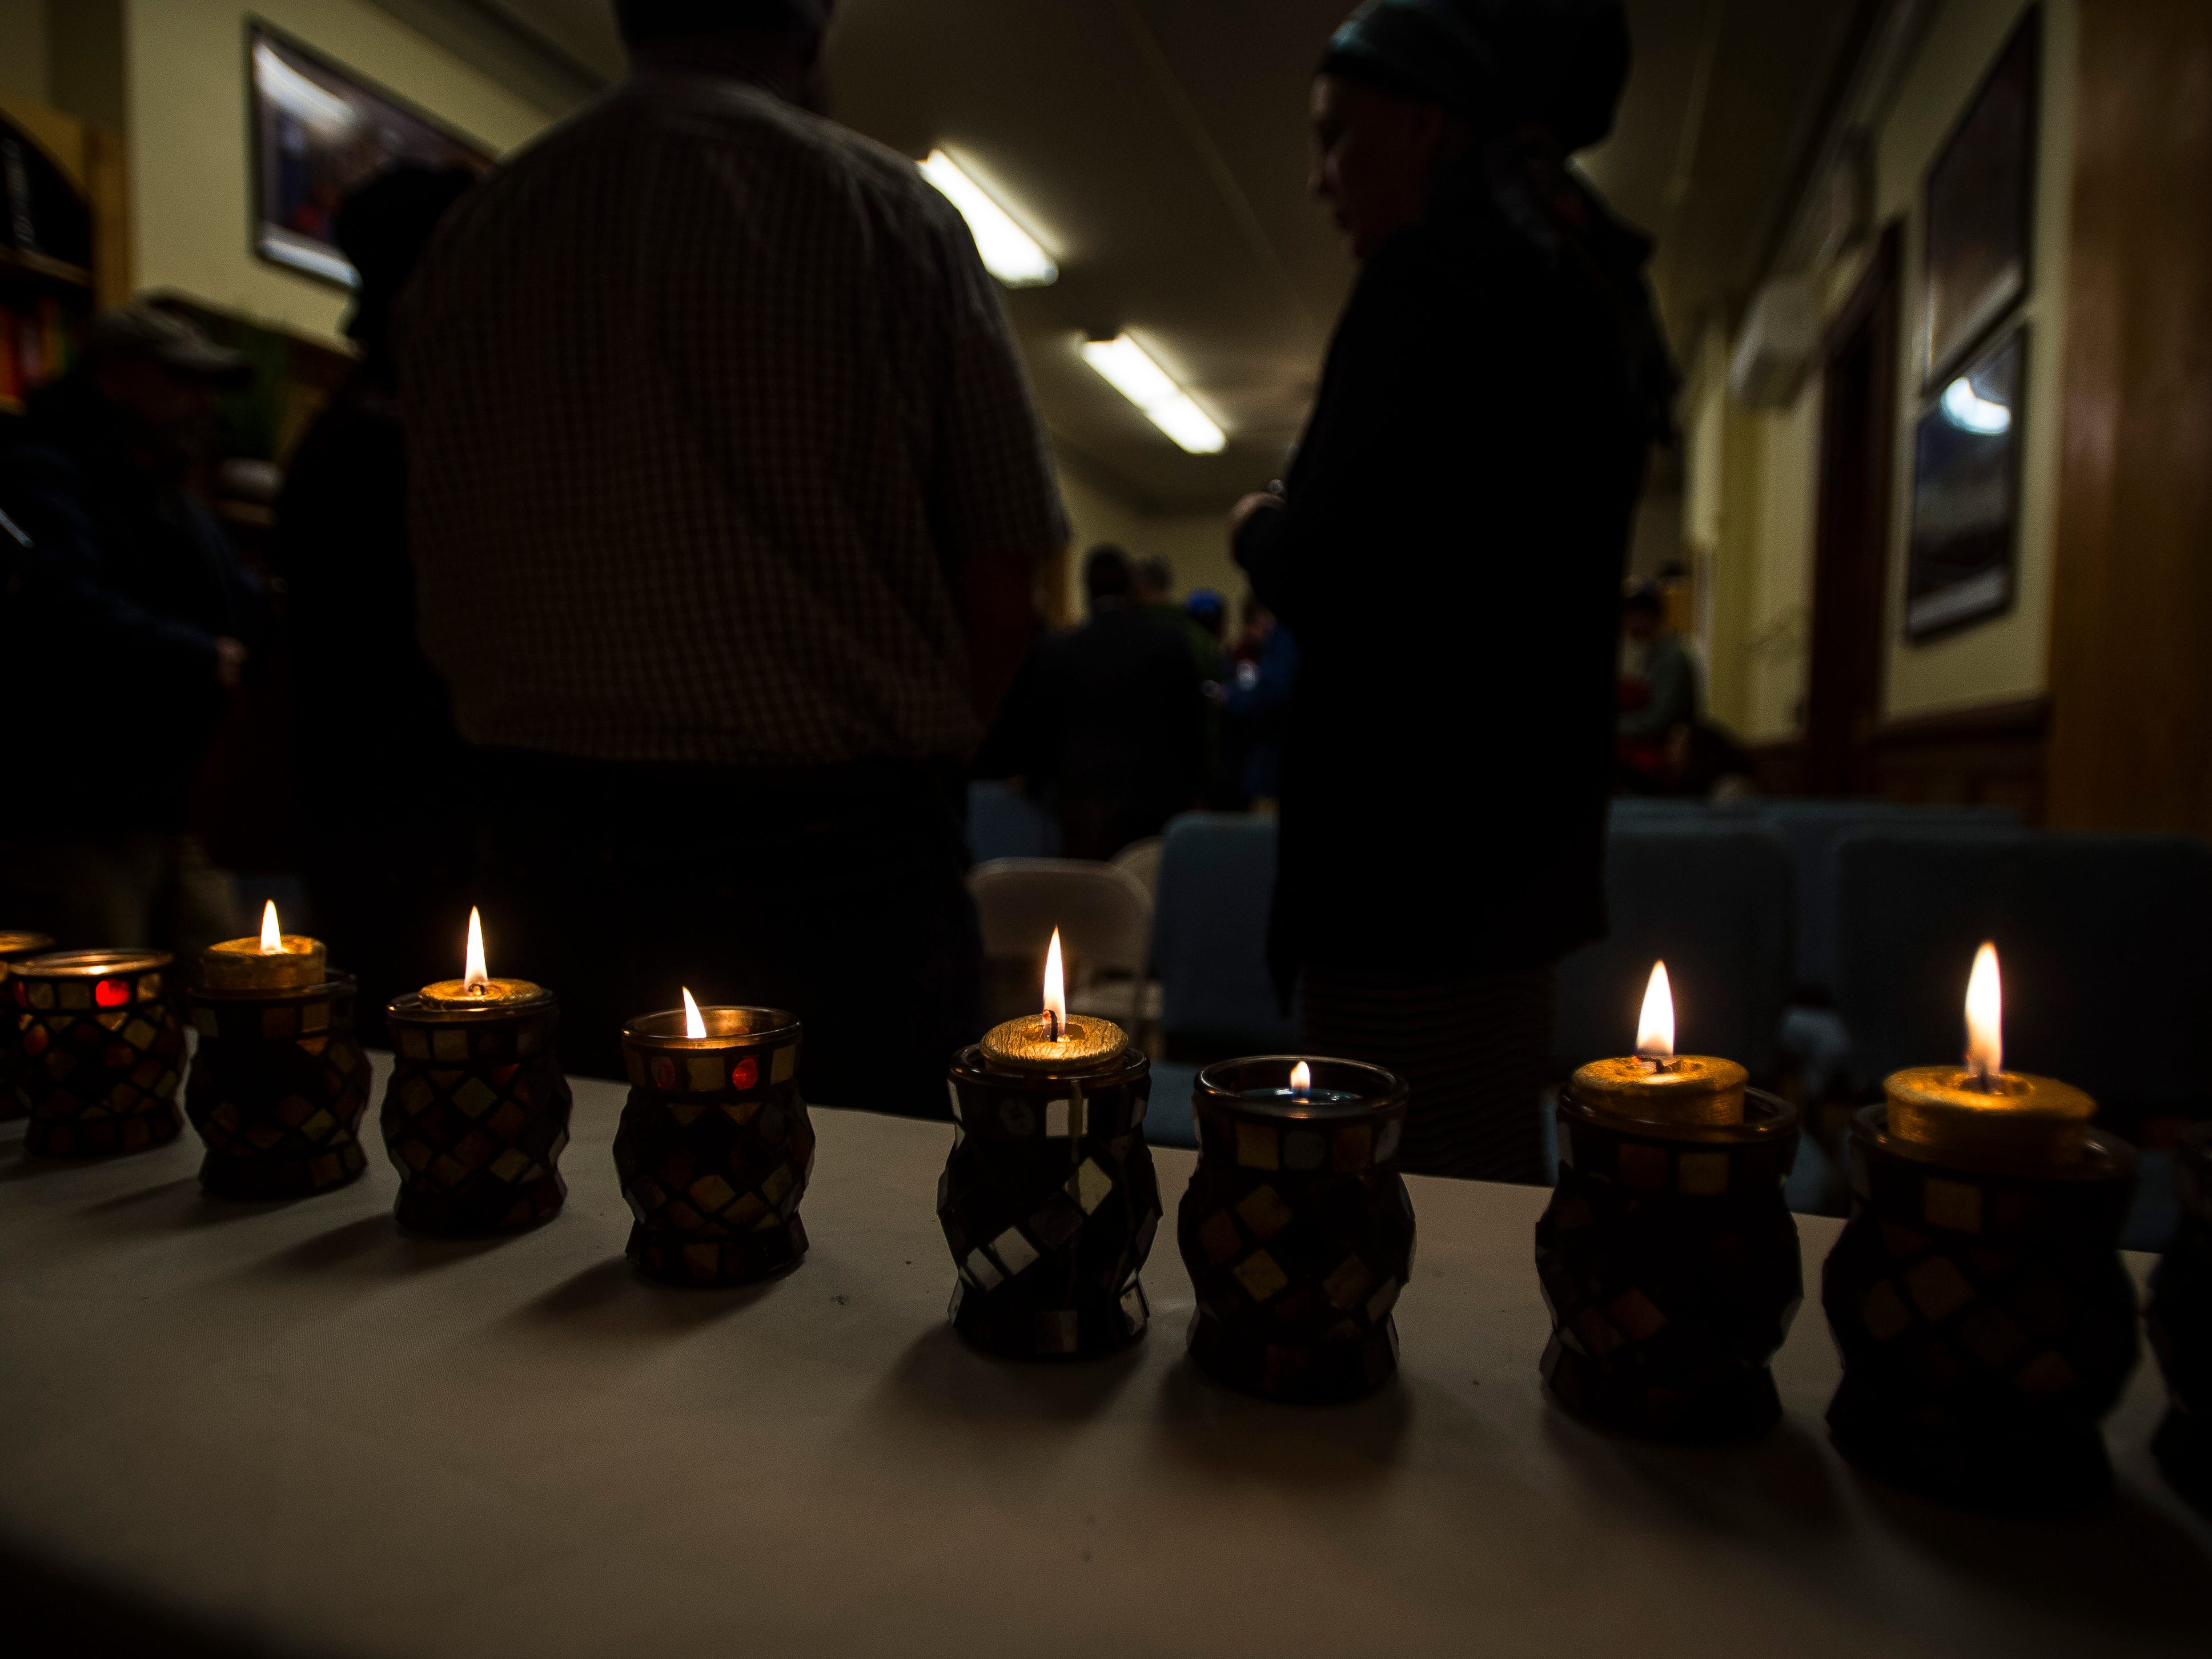 Eleven candles, one marking each life of the people killed at the Tree of Life Congregation Synagogue in the Squirrel Hill neighborhood of Pittsburgh, were lit during a vigil at Chabad of Vermont in Burlington, Vt., Monday, Oct. 29, 2018.